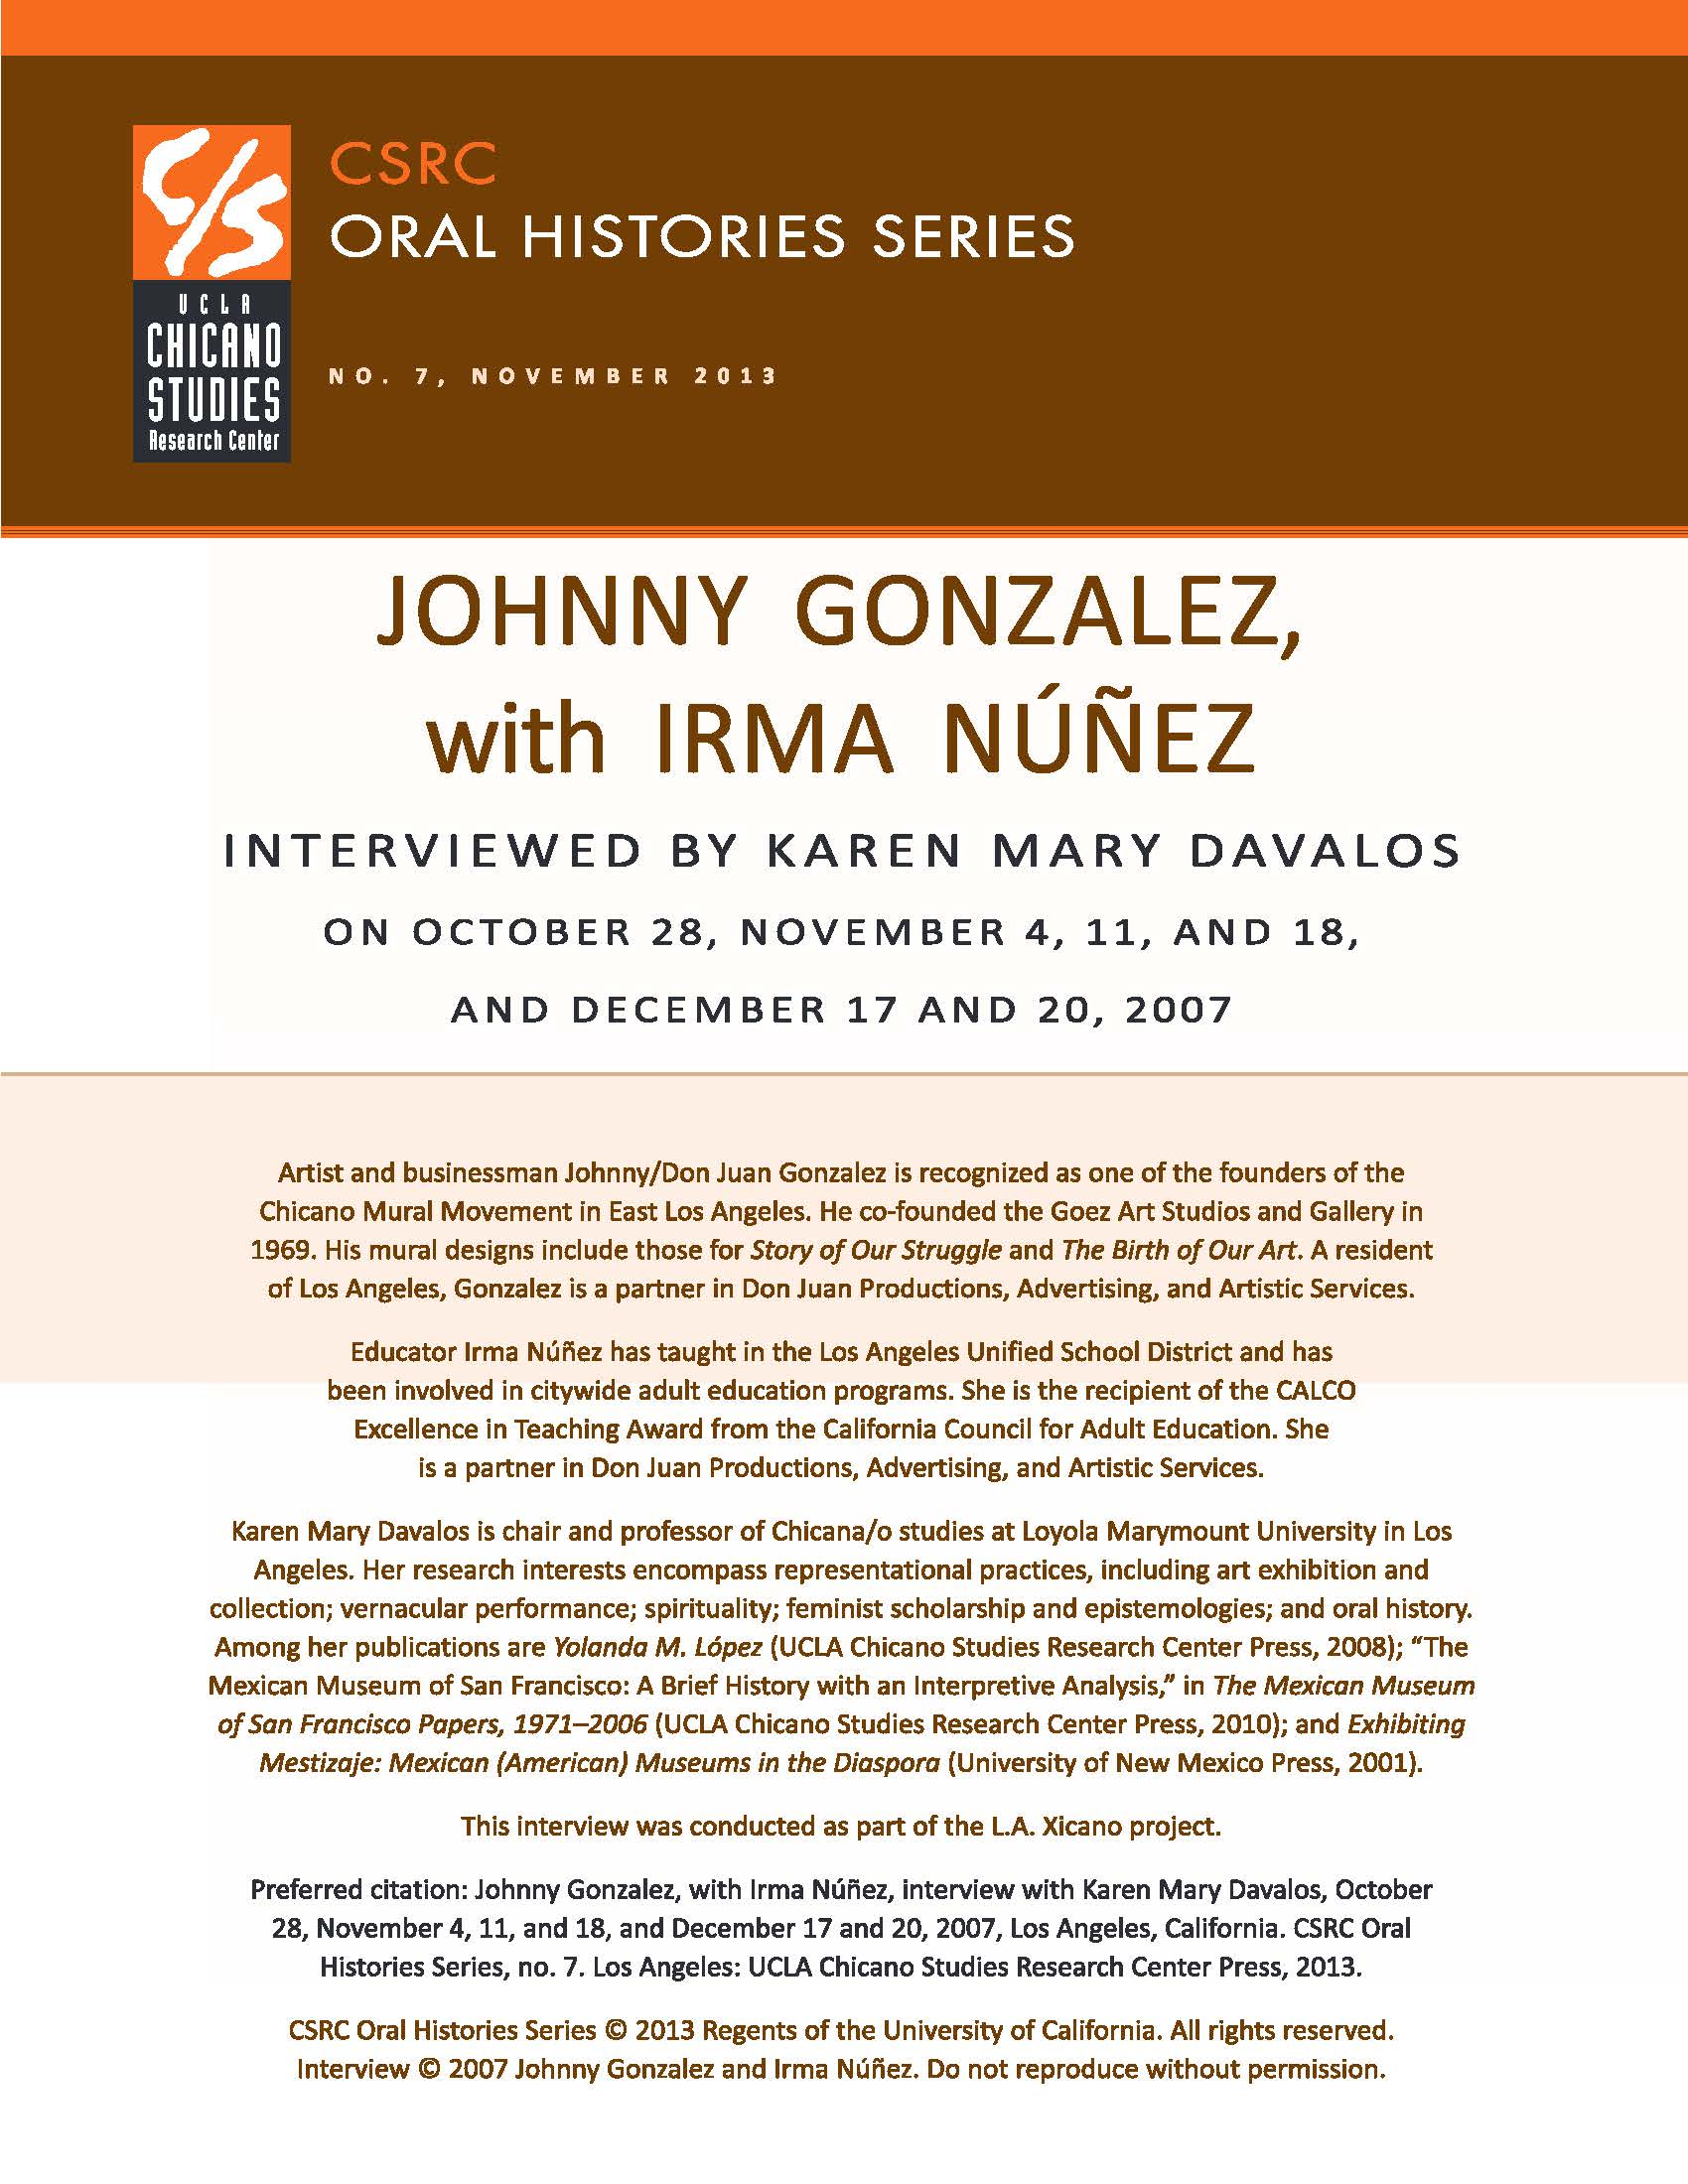 Johnny Gonzalez Ucla Chicano Studies Research Center